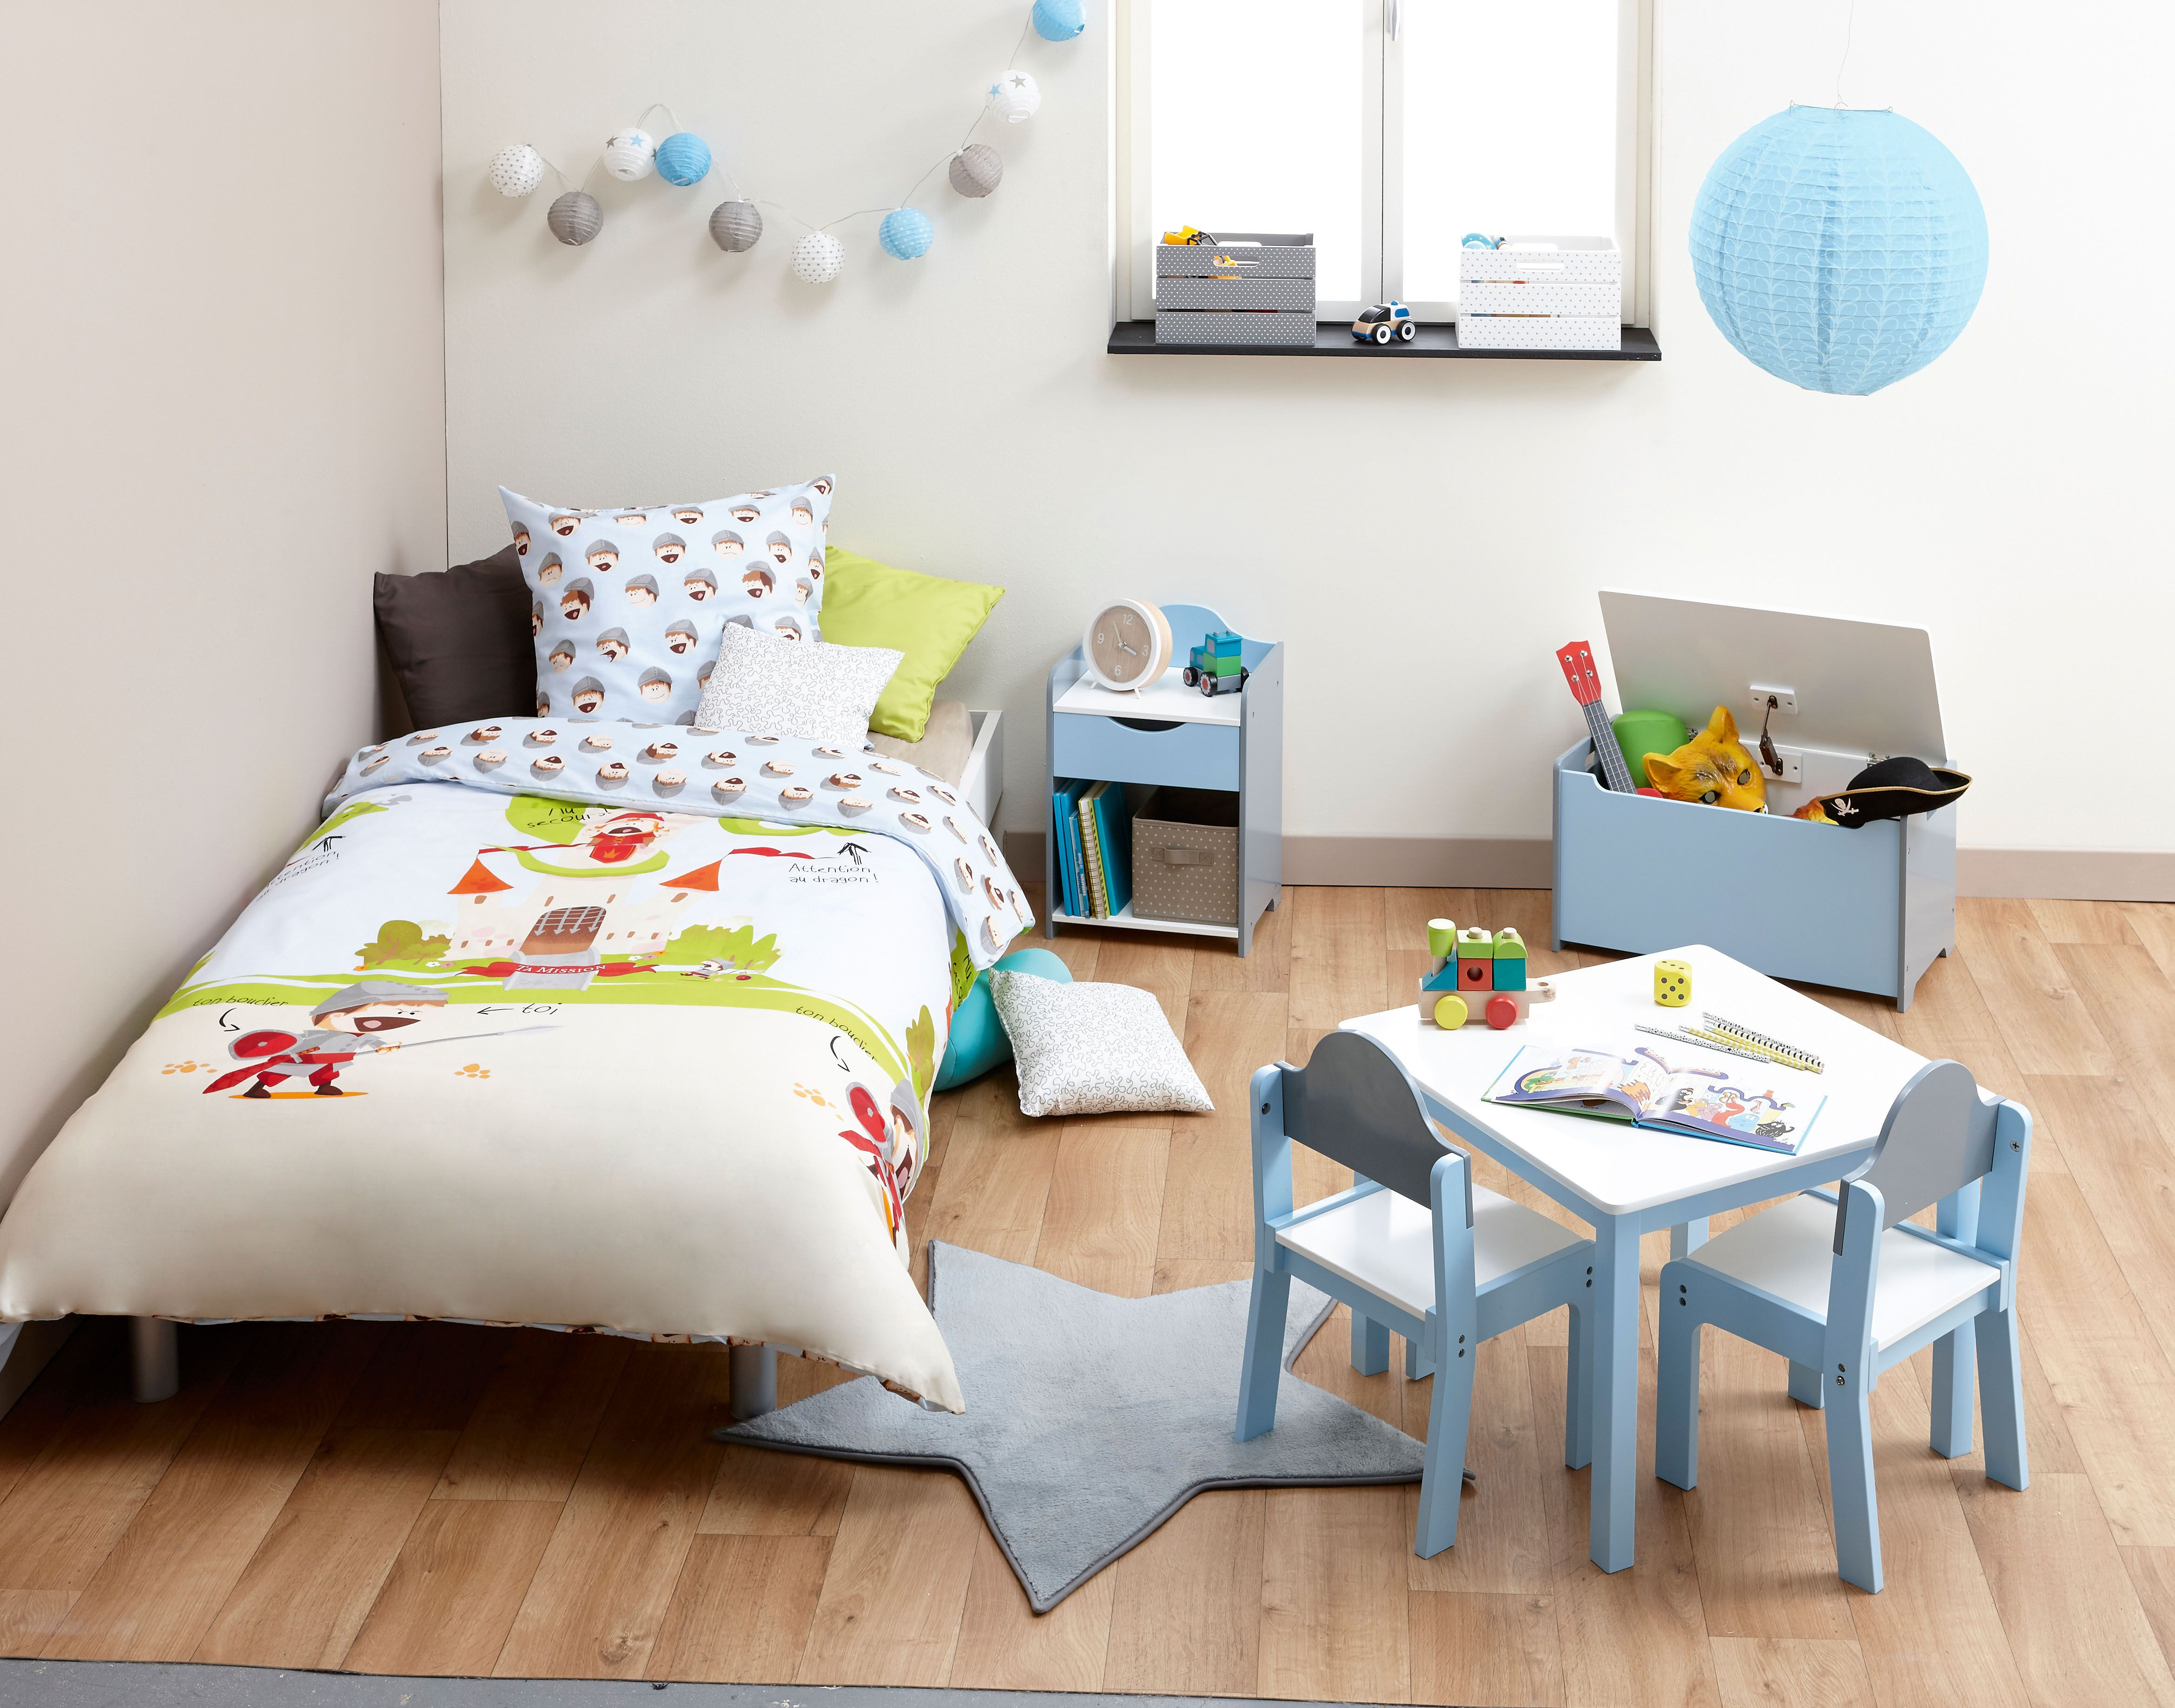 Chambre d enfant ambiance home story guirlande led chevet